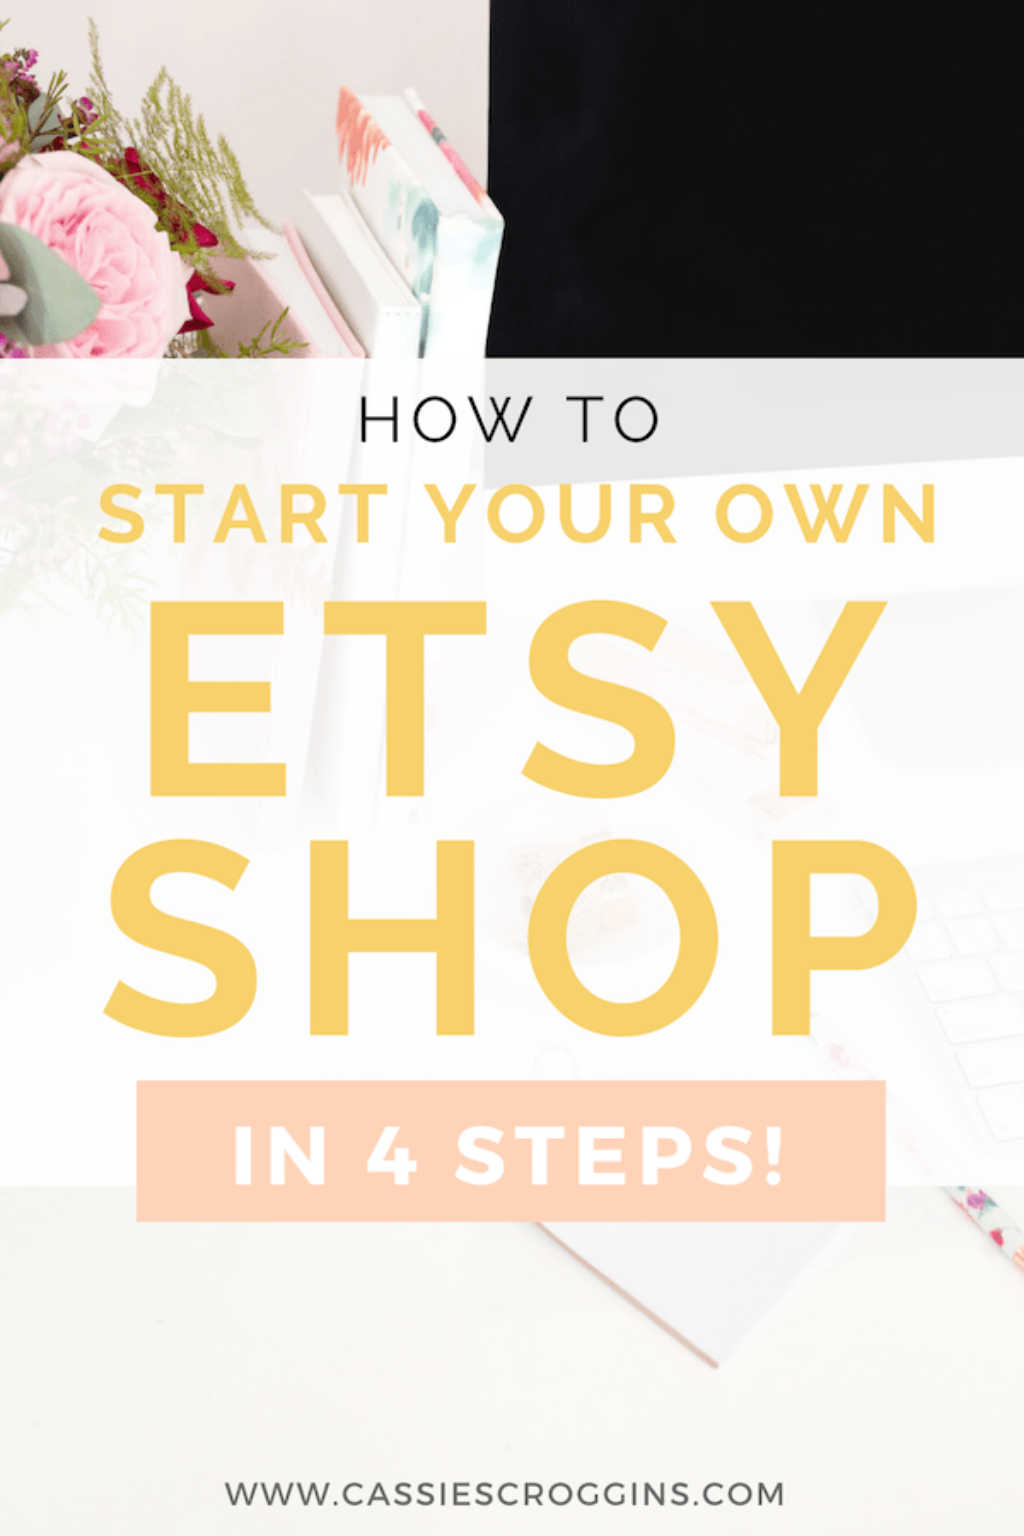 25d6416115d21 How to Start Your Own Etsy Shop in 4 Steps! - Cassie Scroggins